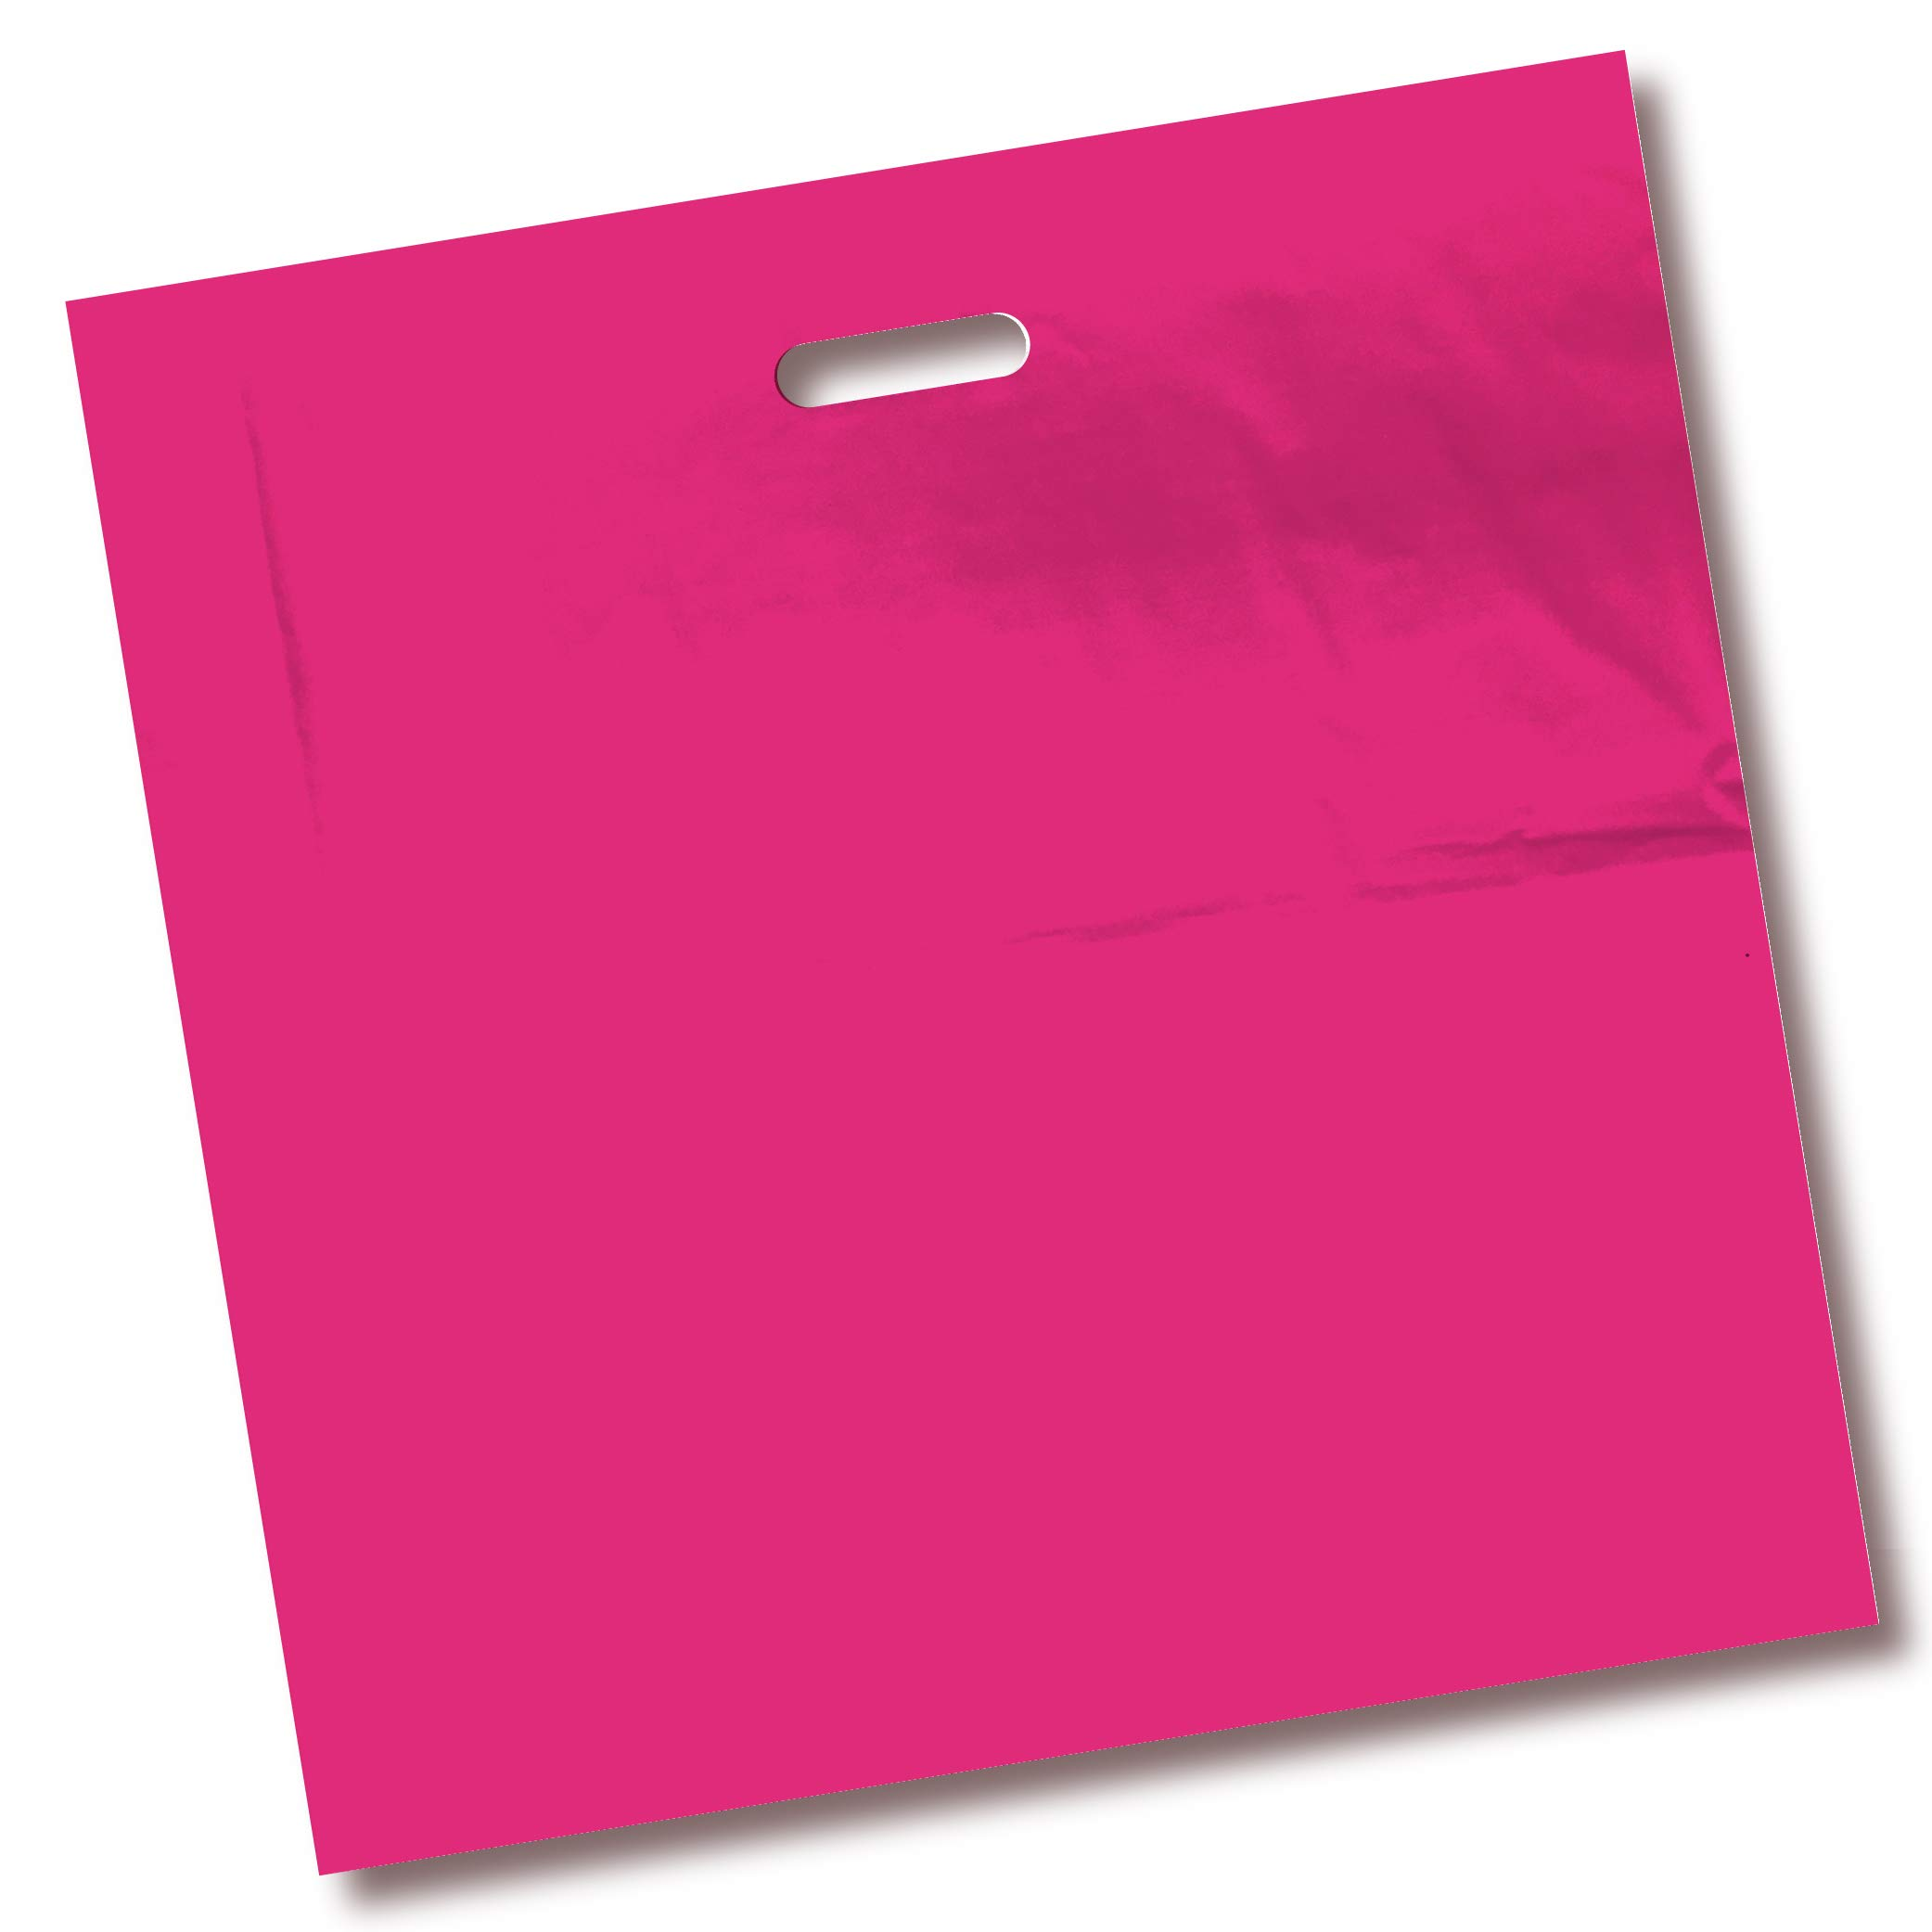 100 Pack 20'' x 20'' with 2 mil Thick Pink Merchandise Plastic Glossy Retail Bags | Die Cut Handles | Perfect for Shopping, Party Favors, Birthdays, Children Parties | Color Pink | 100% Recyclable